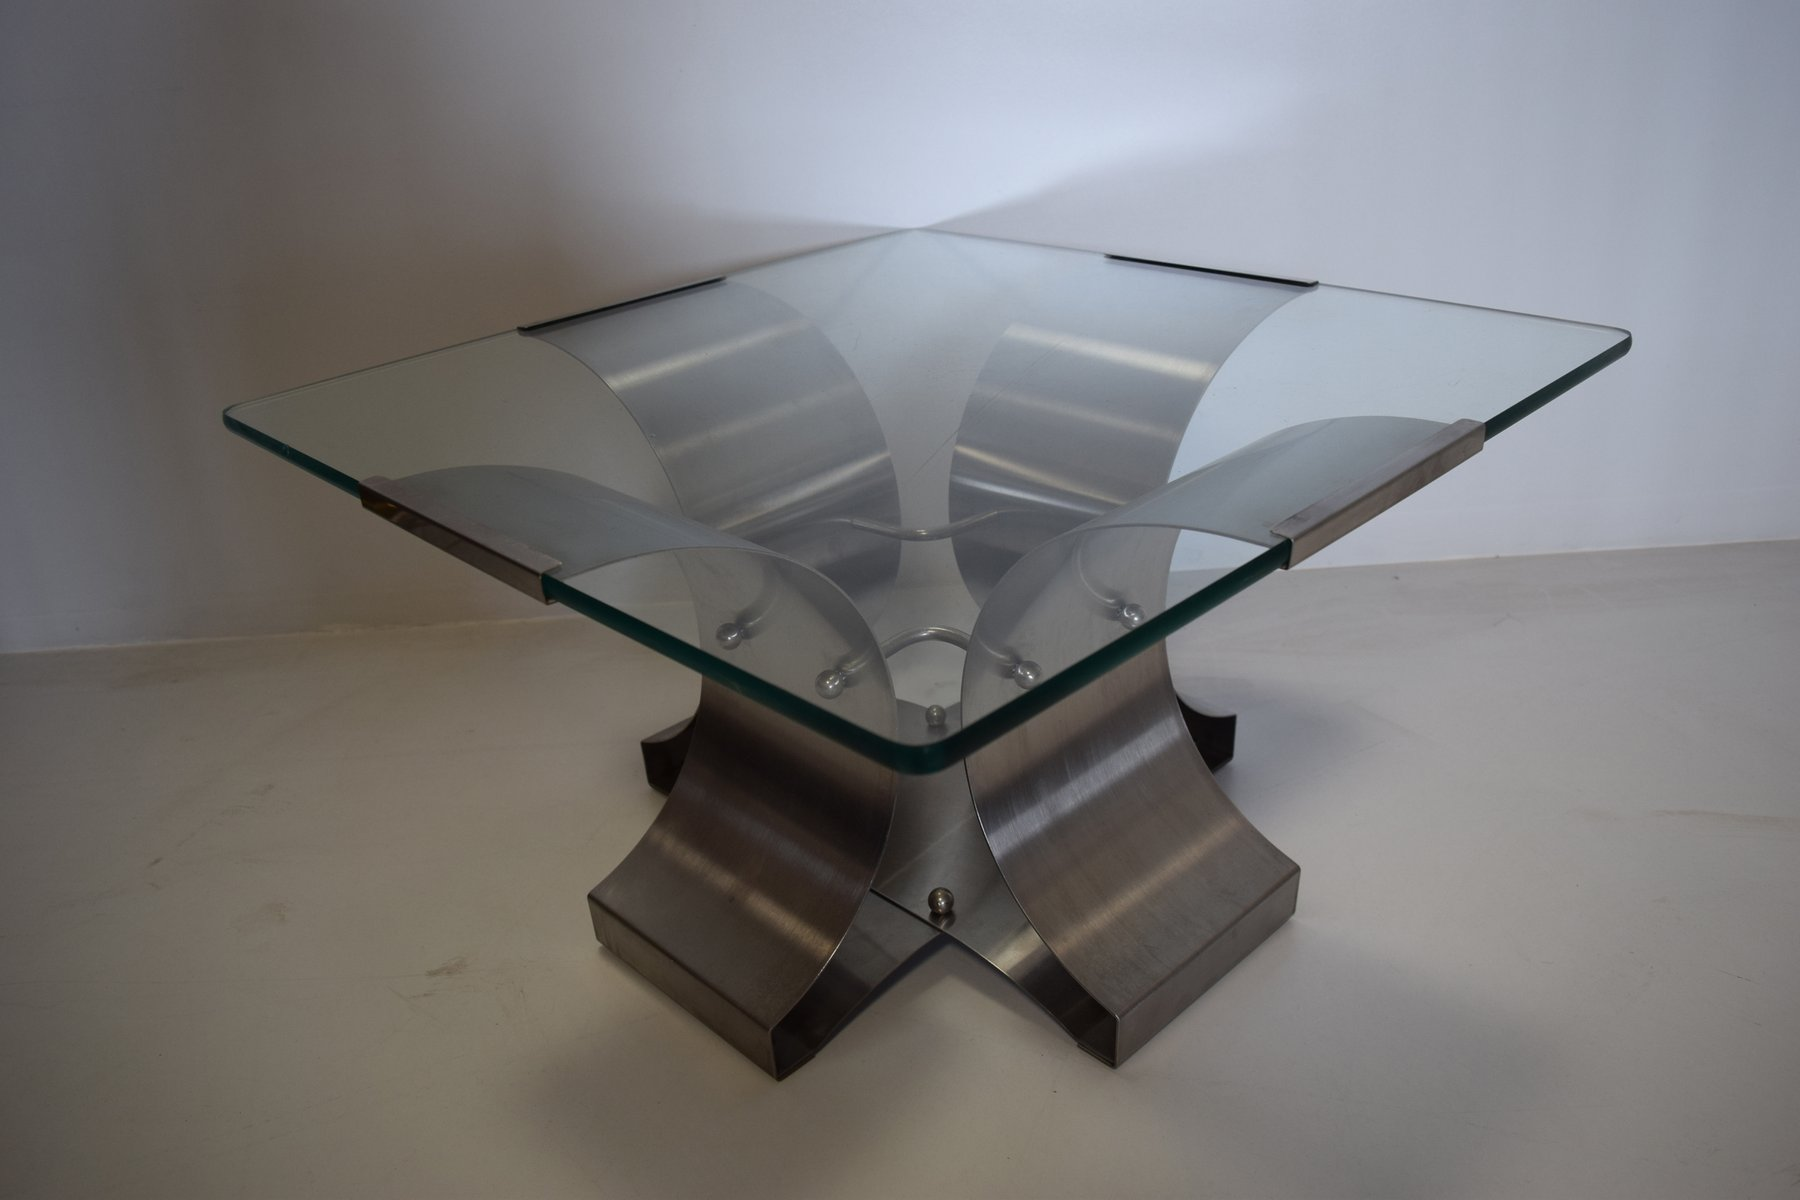 French steel and glass coffee table by fran ois monnet 1970s for sale at pamono Steel and glass coffee table